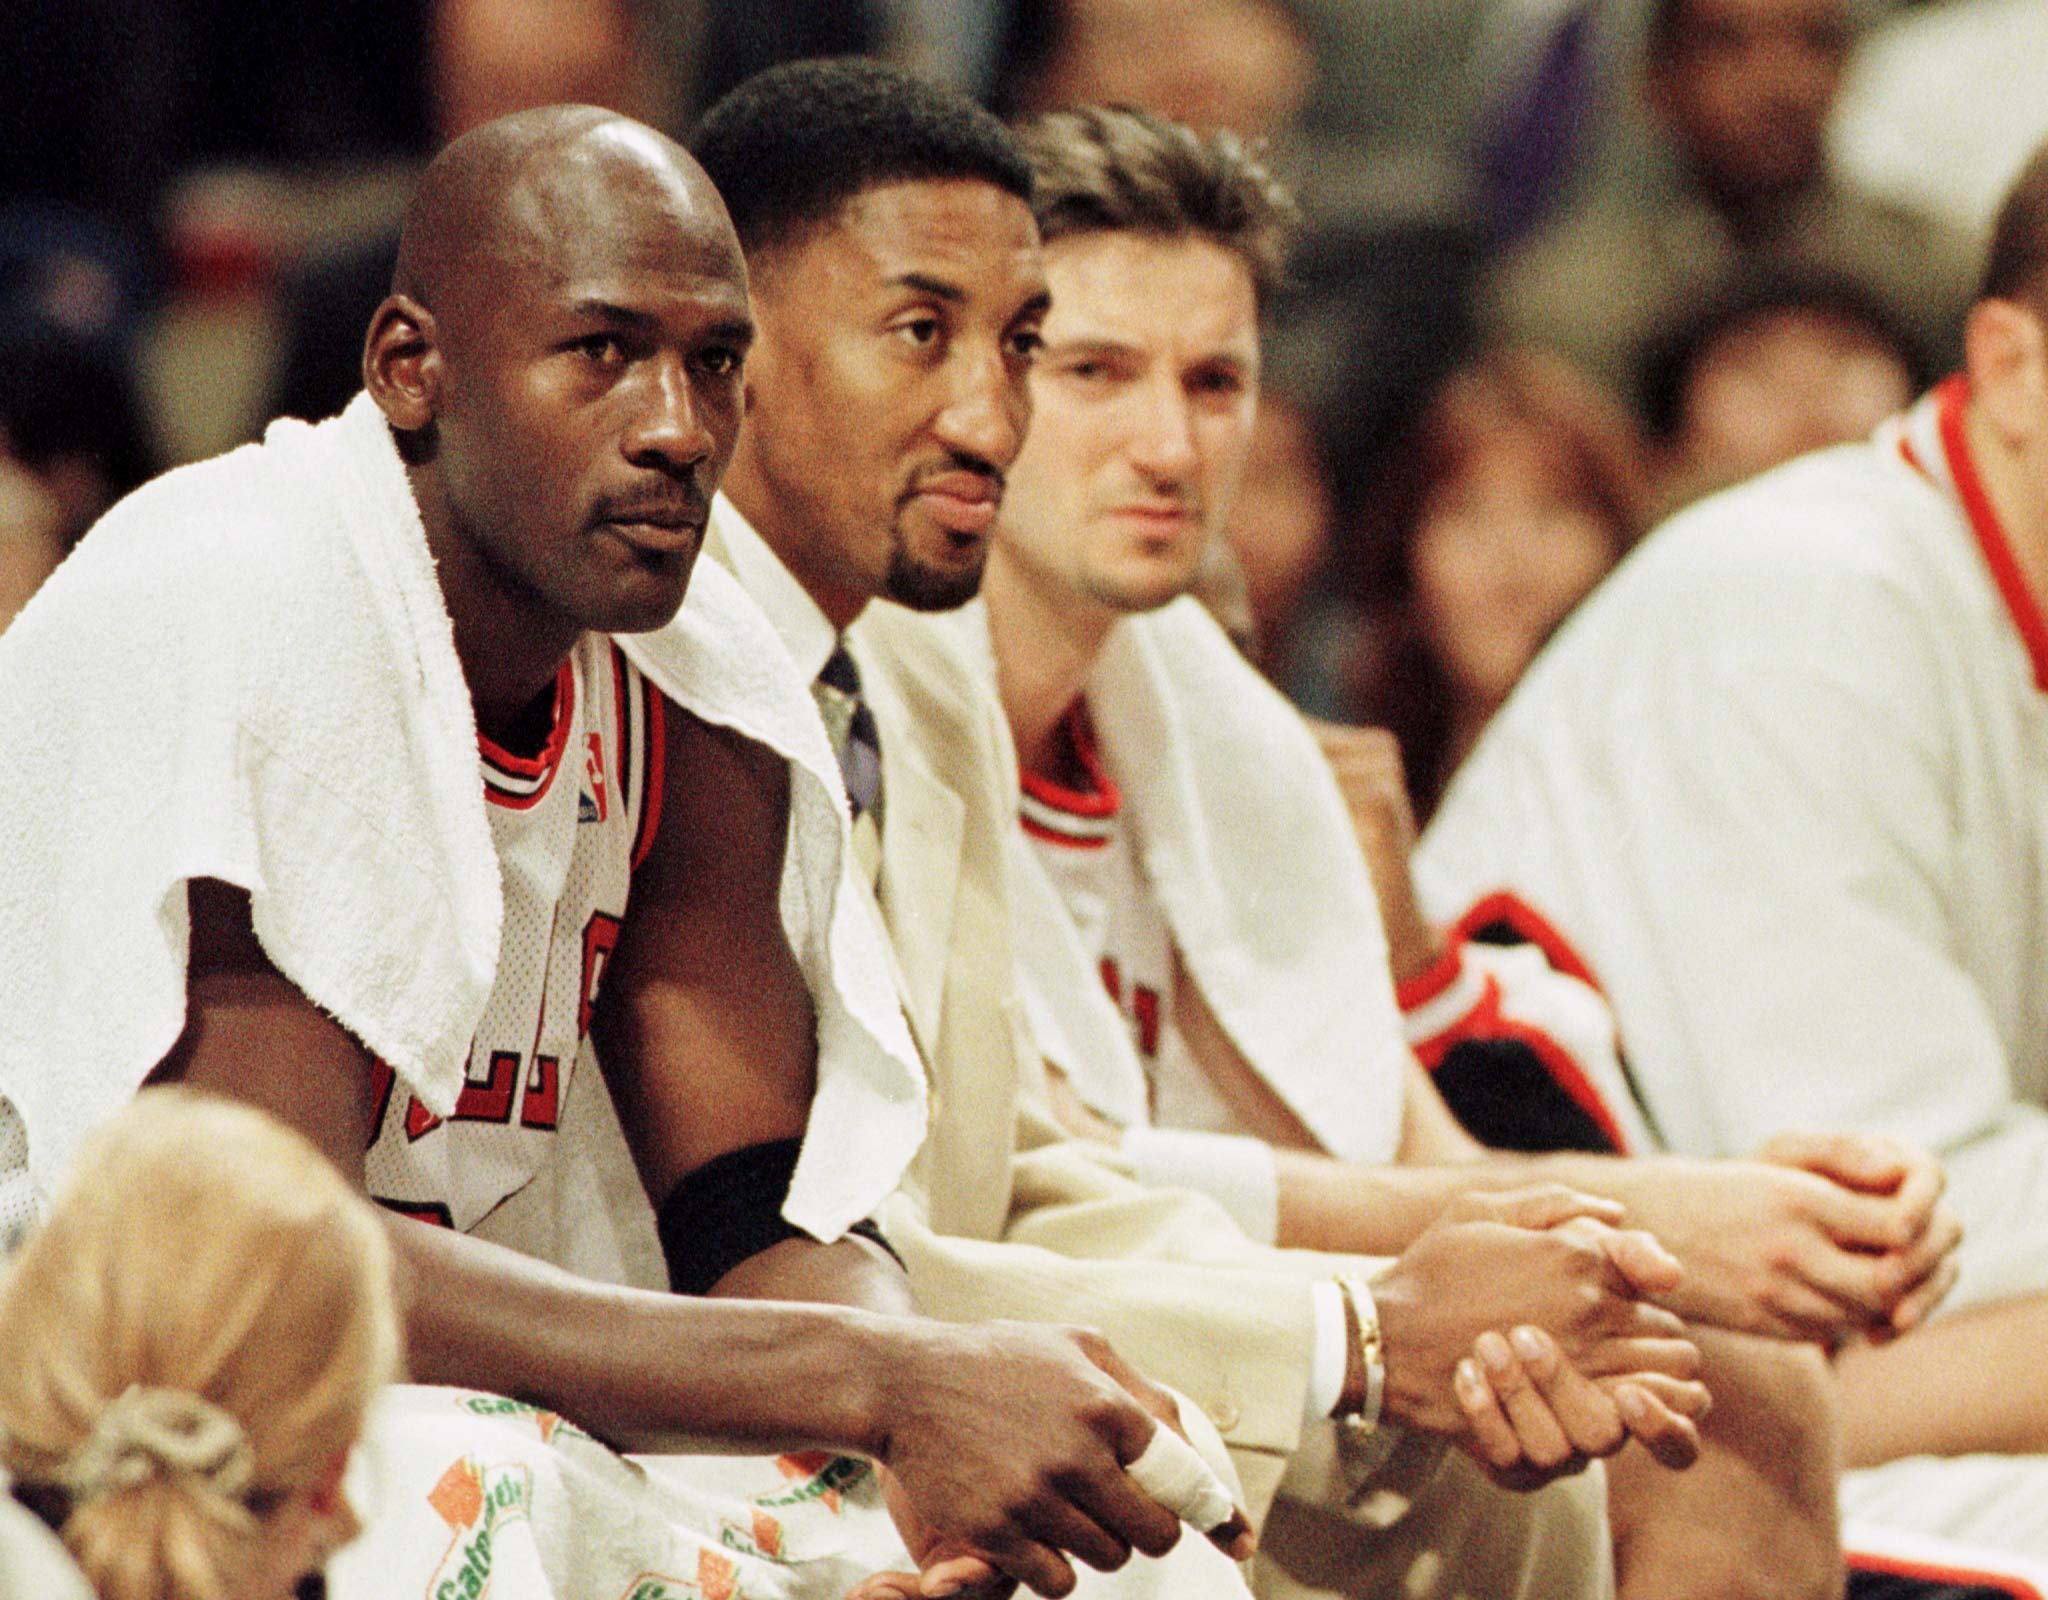 Chicago Bulls' Scottie Pippen (C), who has not played since the start of the season due to a foot injury, watches the game from the bench with teammates Michael Jordan (L) and Toni Kukoc during the fourth quarter November 12 against the Washinton Wizards. The Wizards defeated the Bulls 90-83, as the defending NBA champions fell to 4-4 on the season.  SPORT NBA - RP1DRIDINXAB